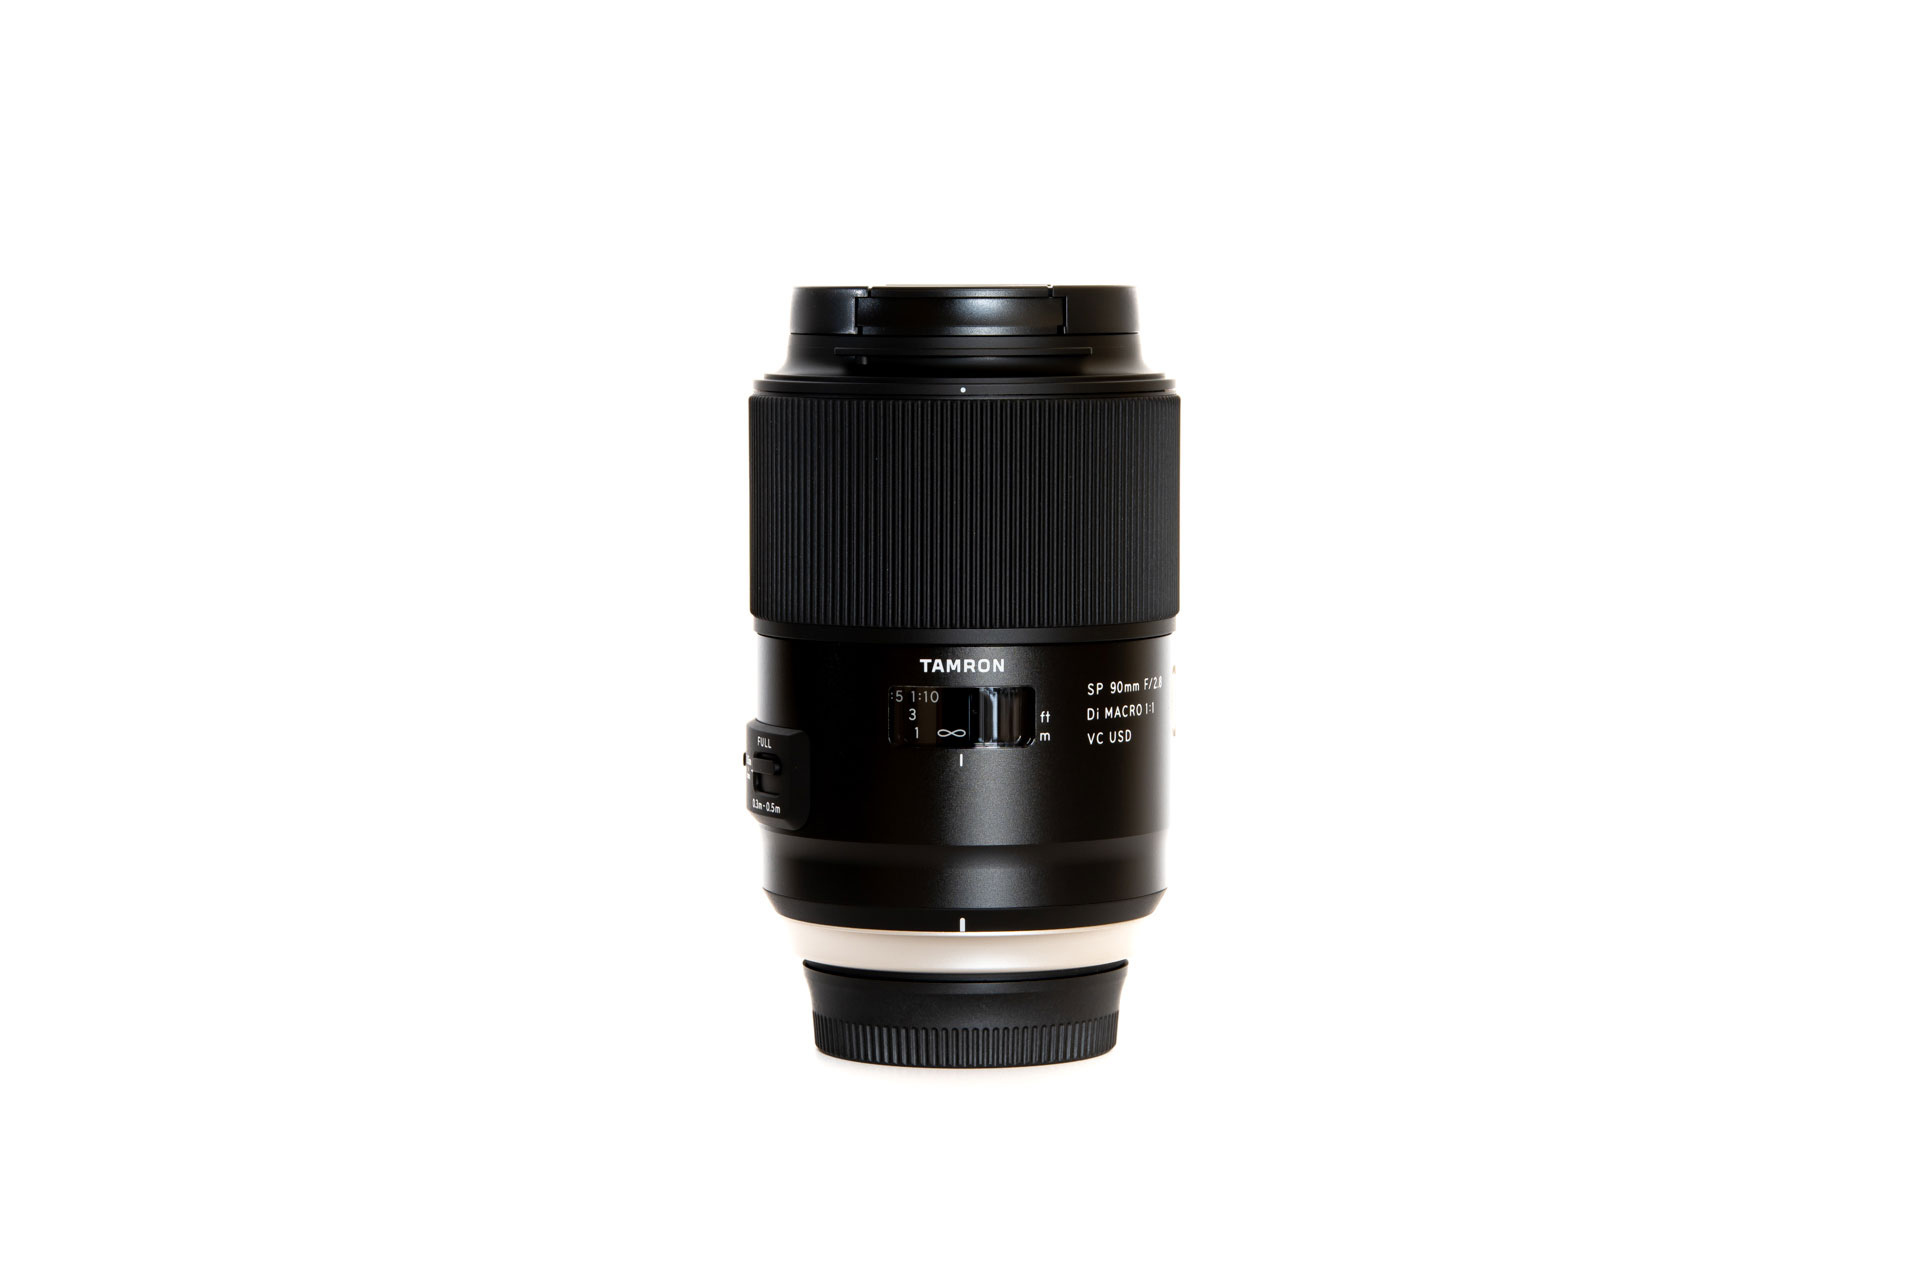 TAMRON SP 90mm F/2.8 Di MACRO 1:1 VC USD F017